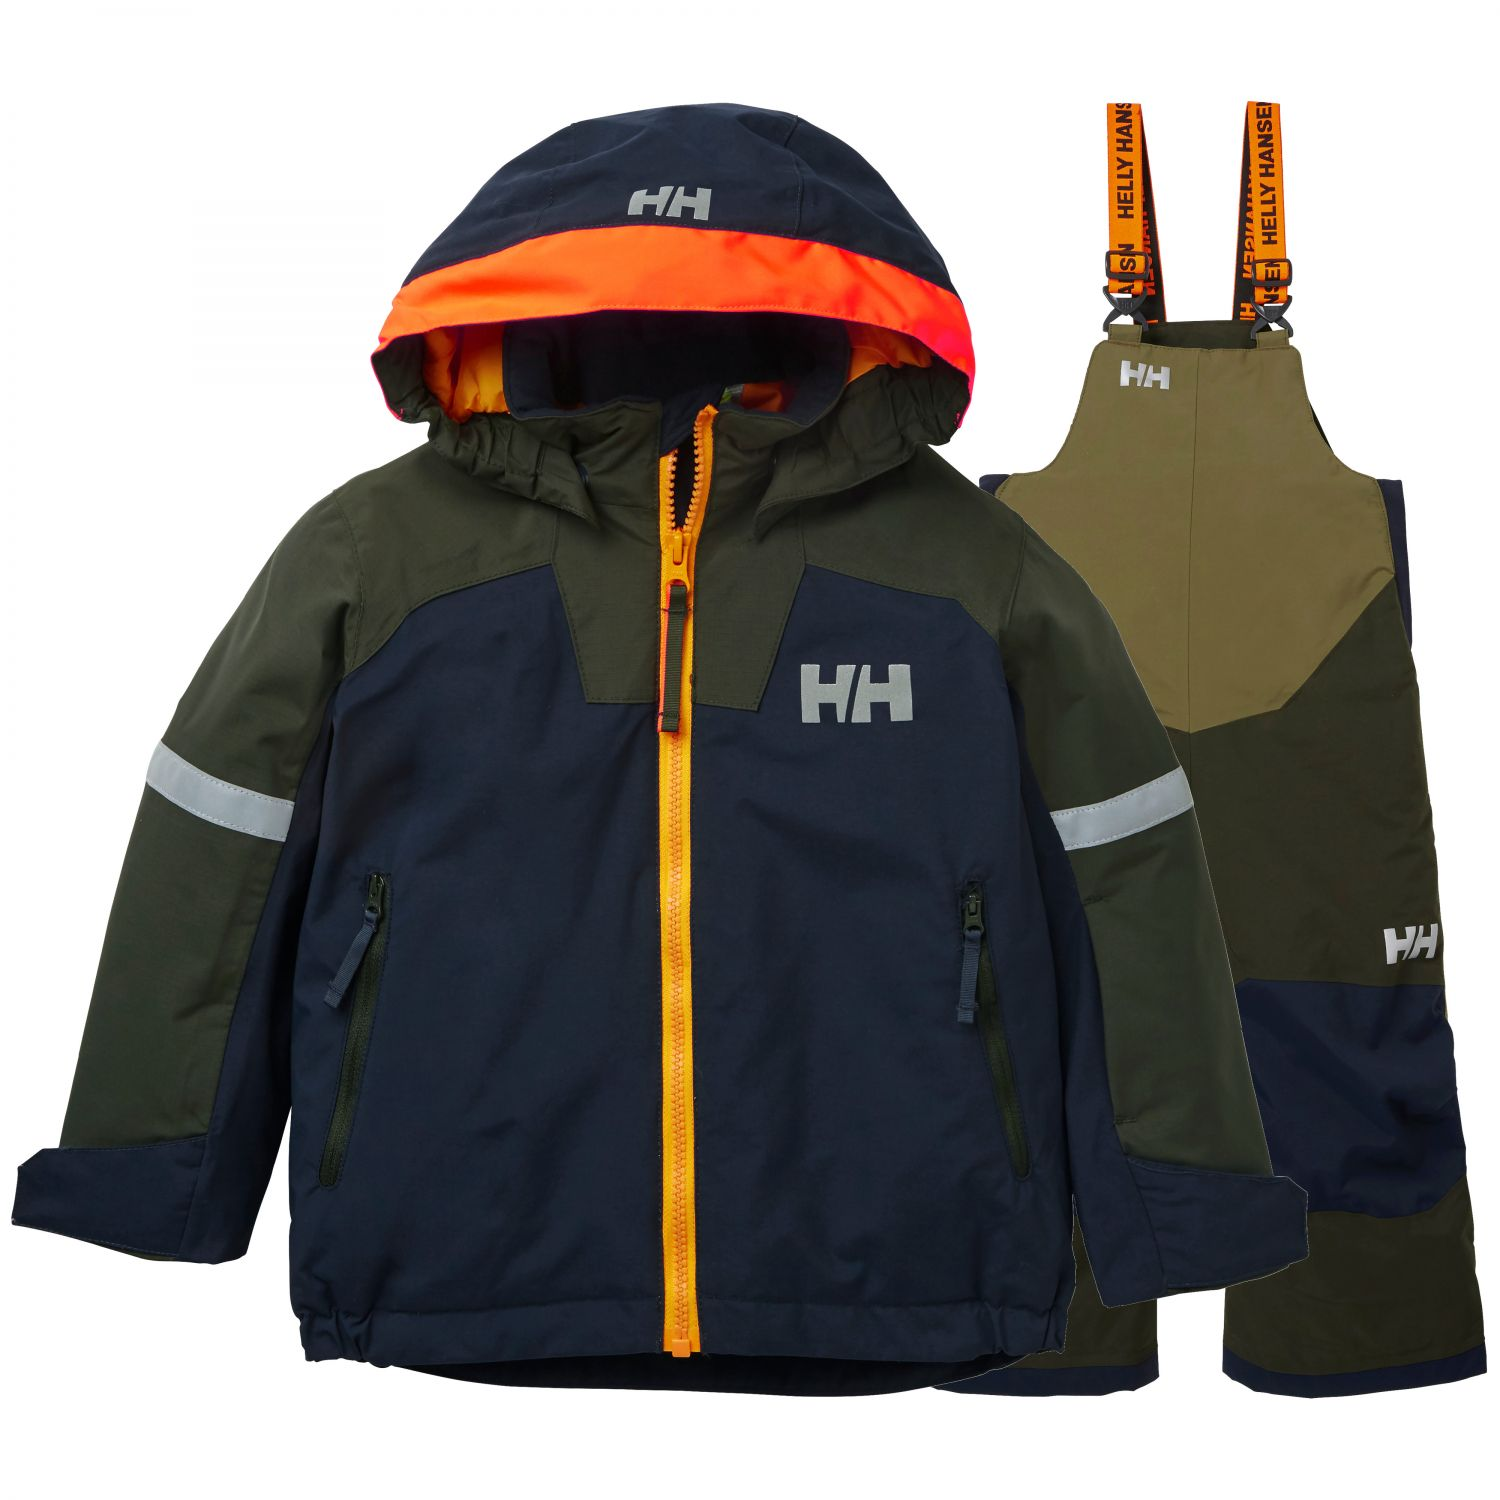 Helly Hansen Legend/Rider Bib, Navy/Green